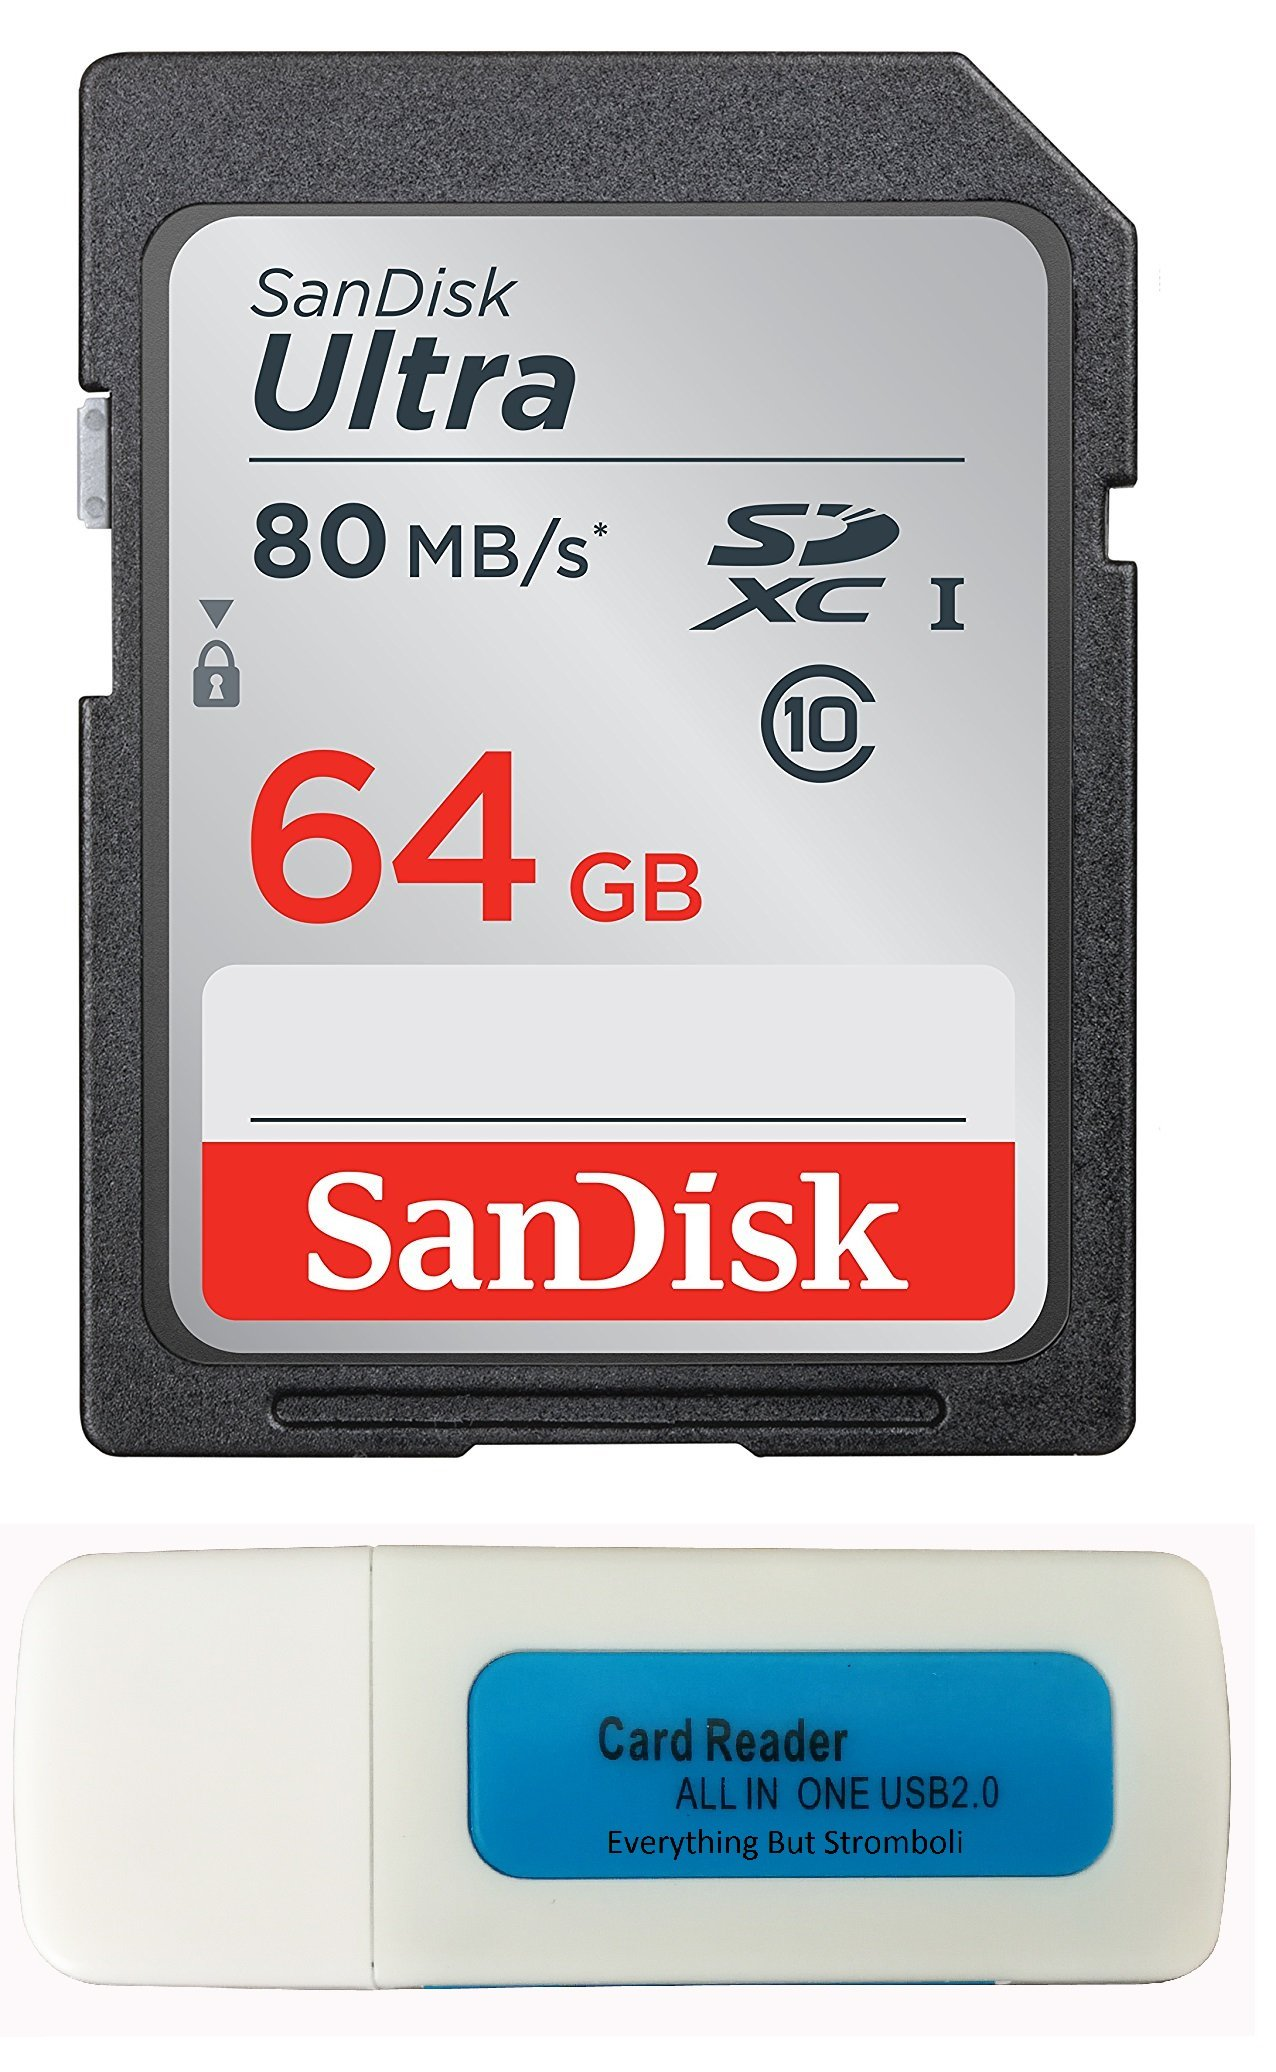 SanDisk 64GB Ultra SDXC Memory Card for Nikon Coolpix L340, B500, A10, L32, S7000, A300, P900, Camera UHS-I Class 10 Up to 80MB with Everything But Stromboli Memory Card Reader (SDSDUNC-064G-GN6IN) by Sandisk